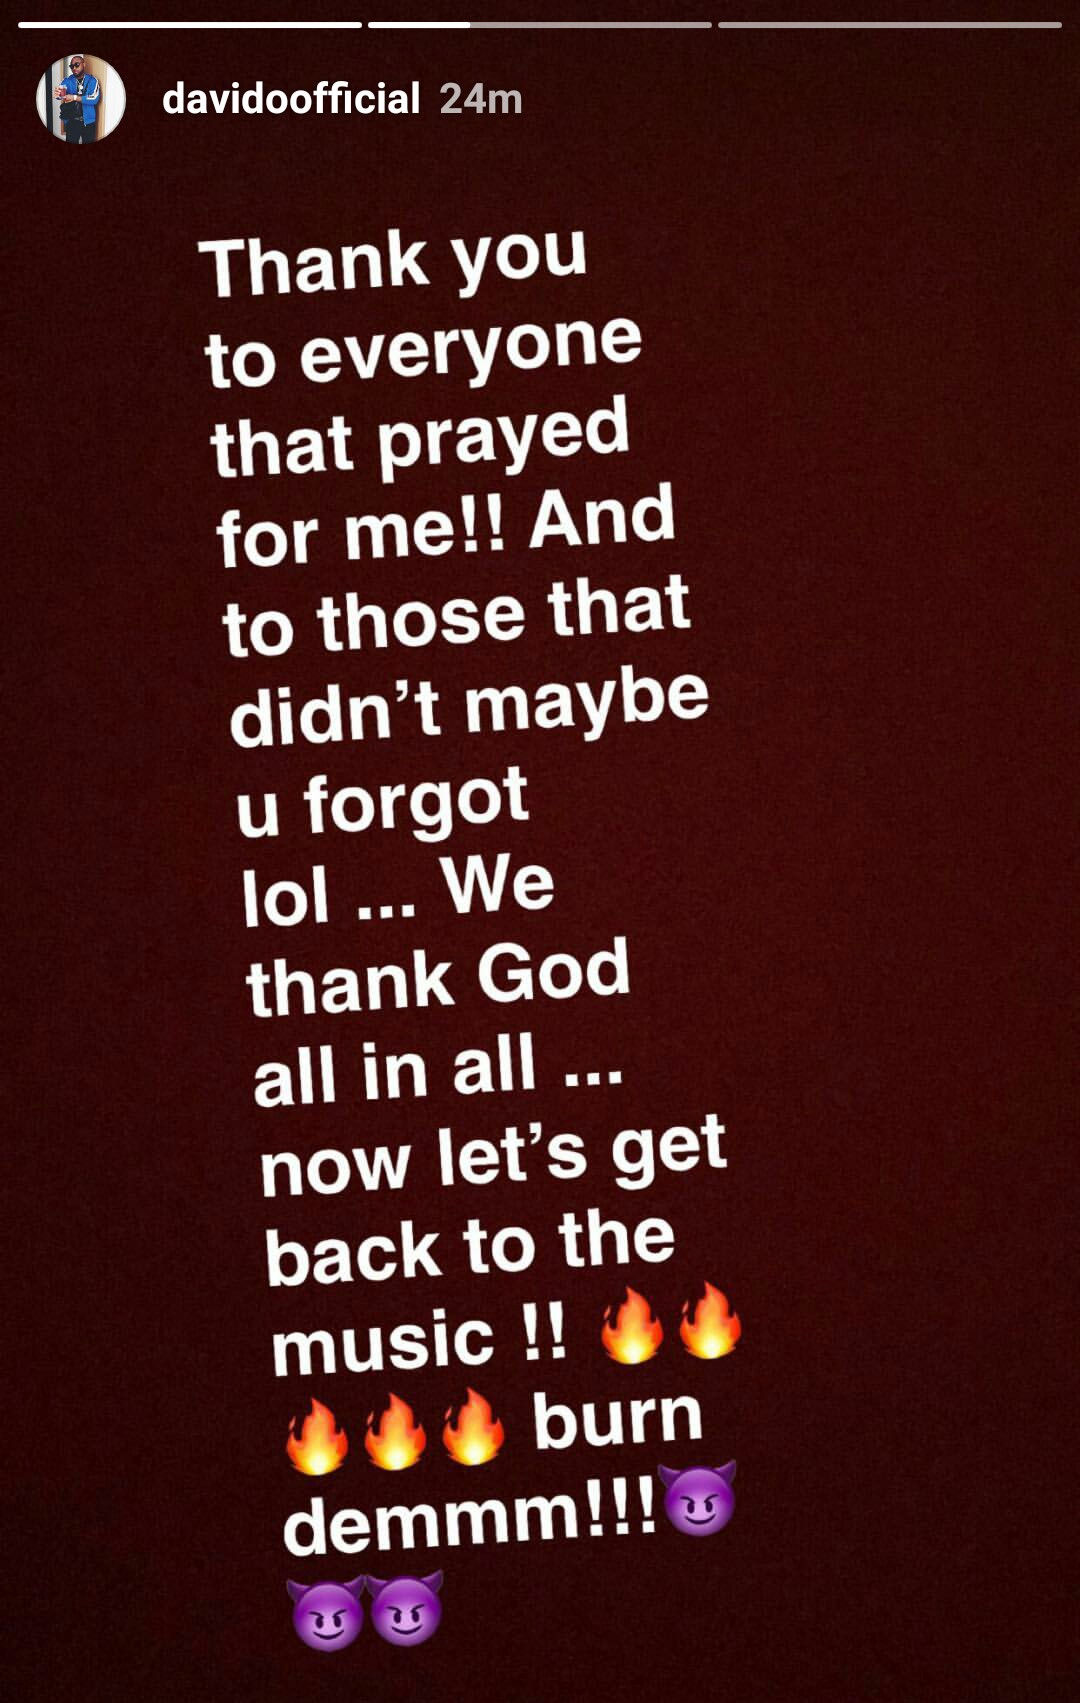 Davido claims to have now forgiven everyone who accused him wrongly on social media....back to making music